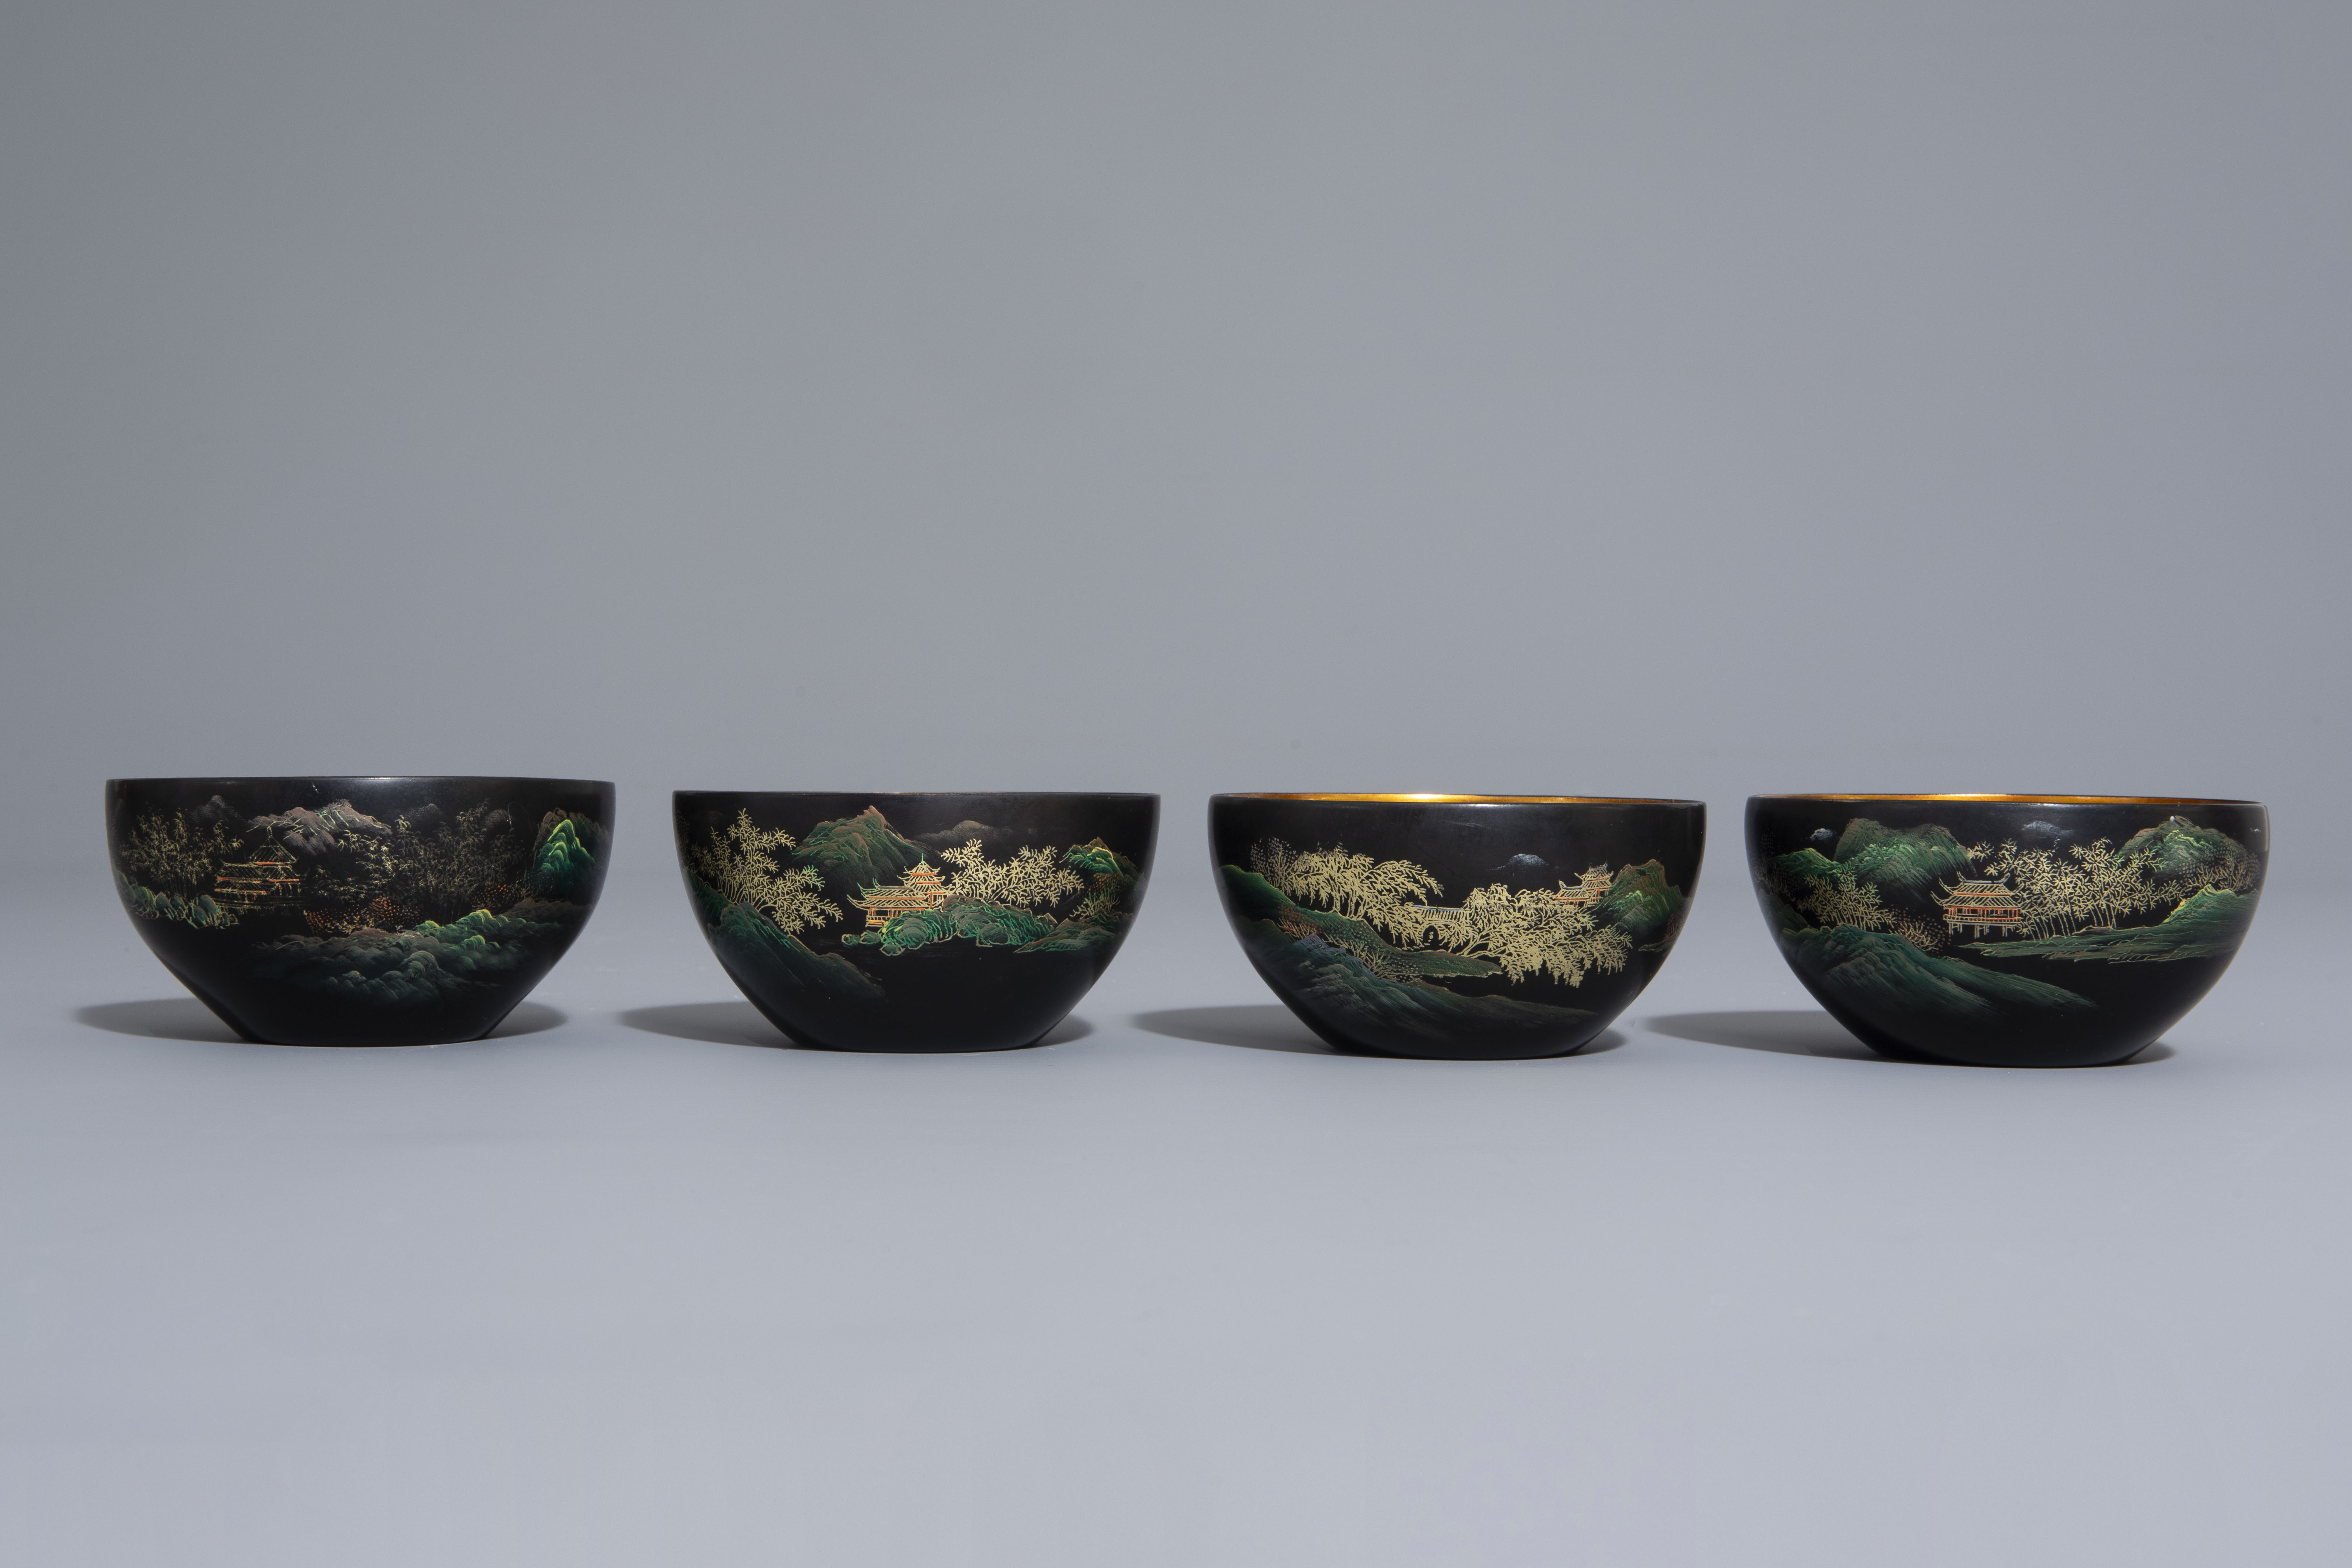 An extensive Chinese Foochow lacquer Shen Shao'an style coffee and tea service, 20th C. - Image 8 of 23